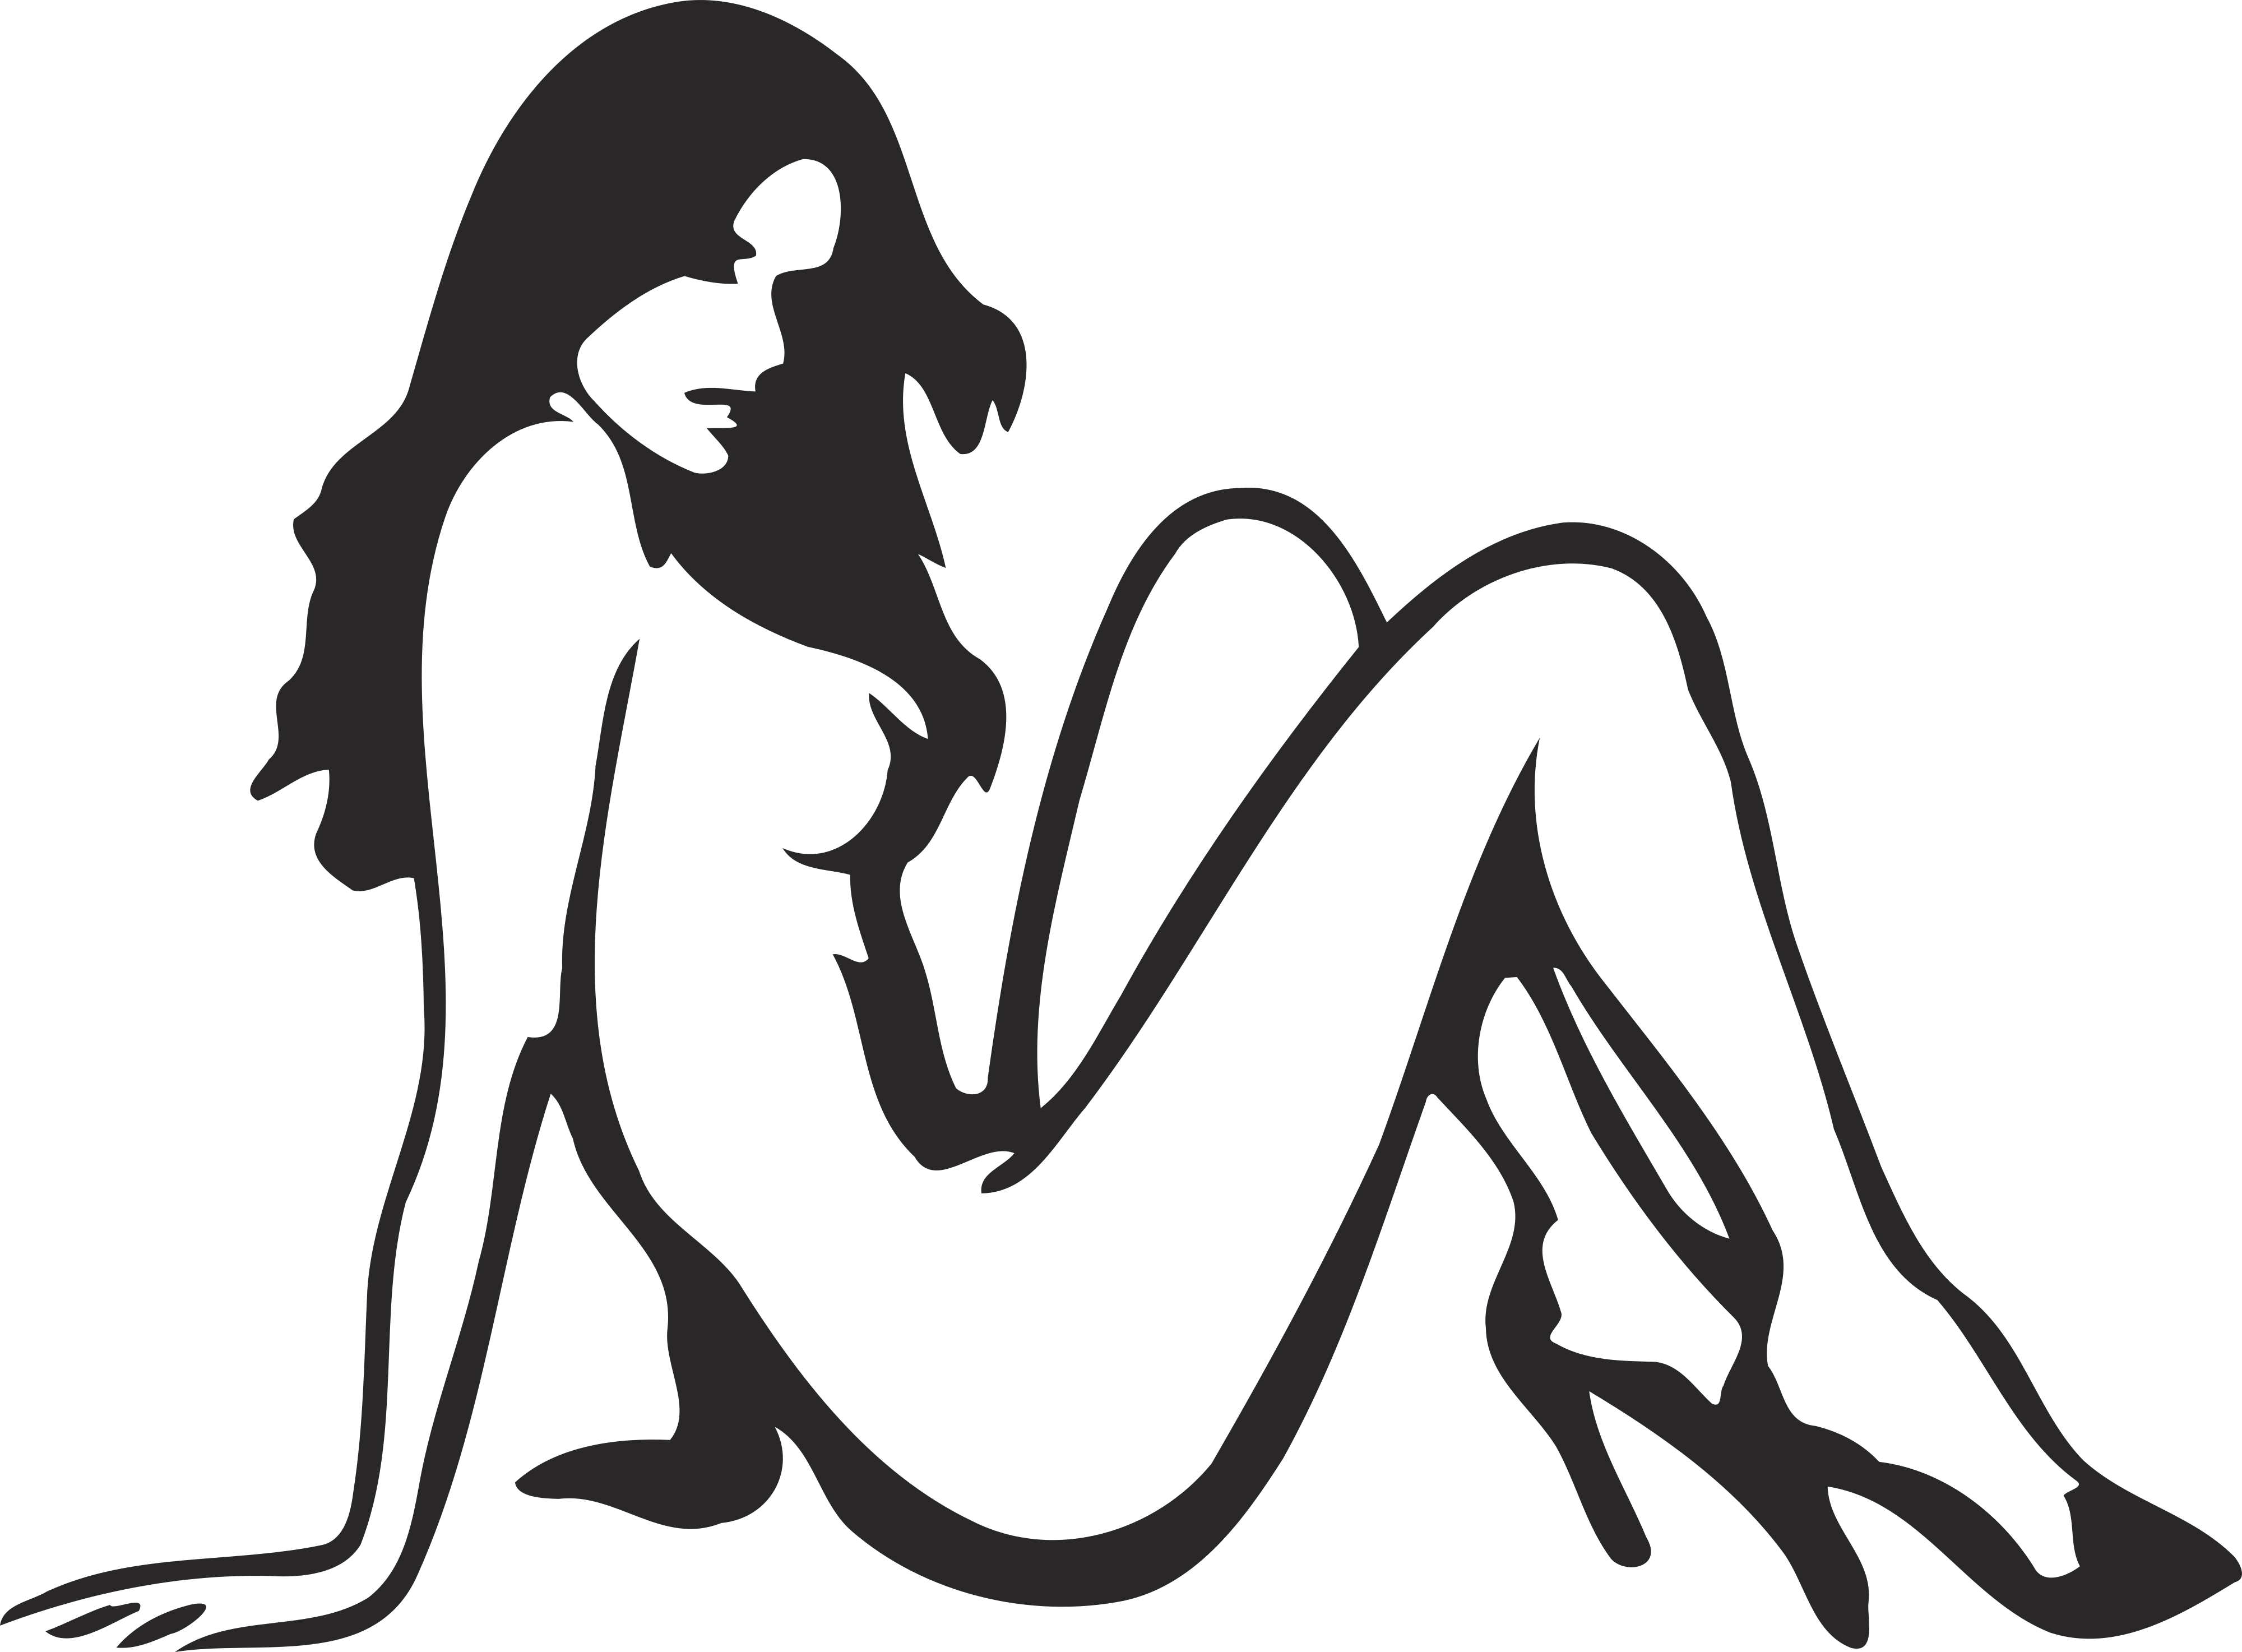 Tattoo Of A Woman's Silhouette On The Right Upper Arm